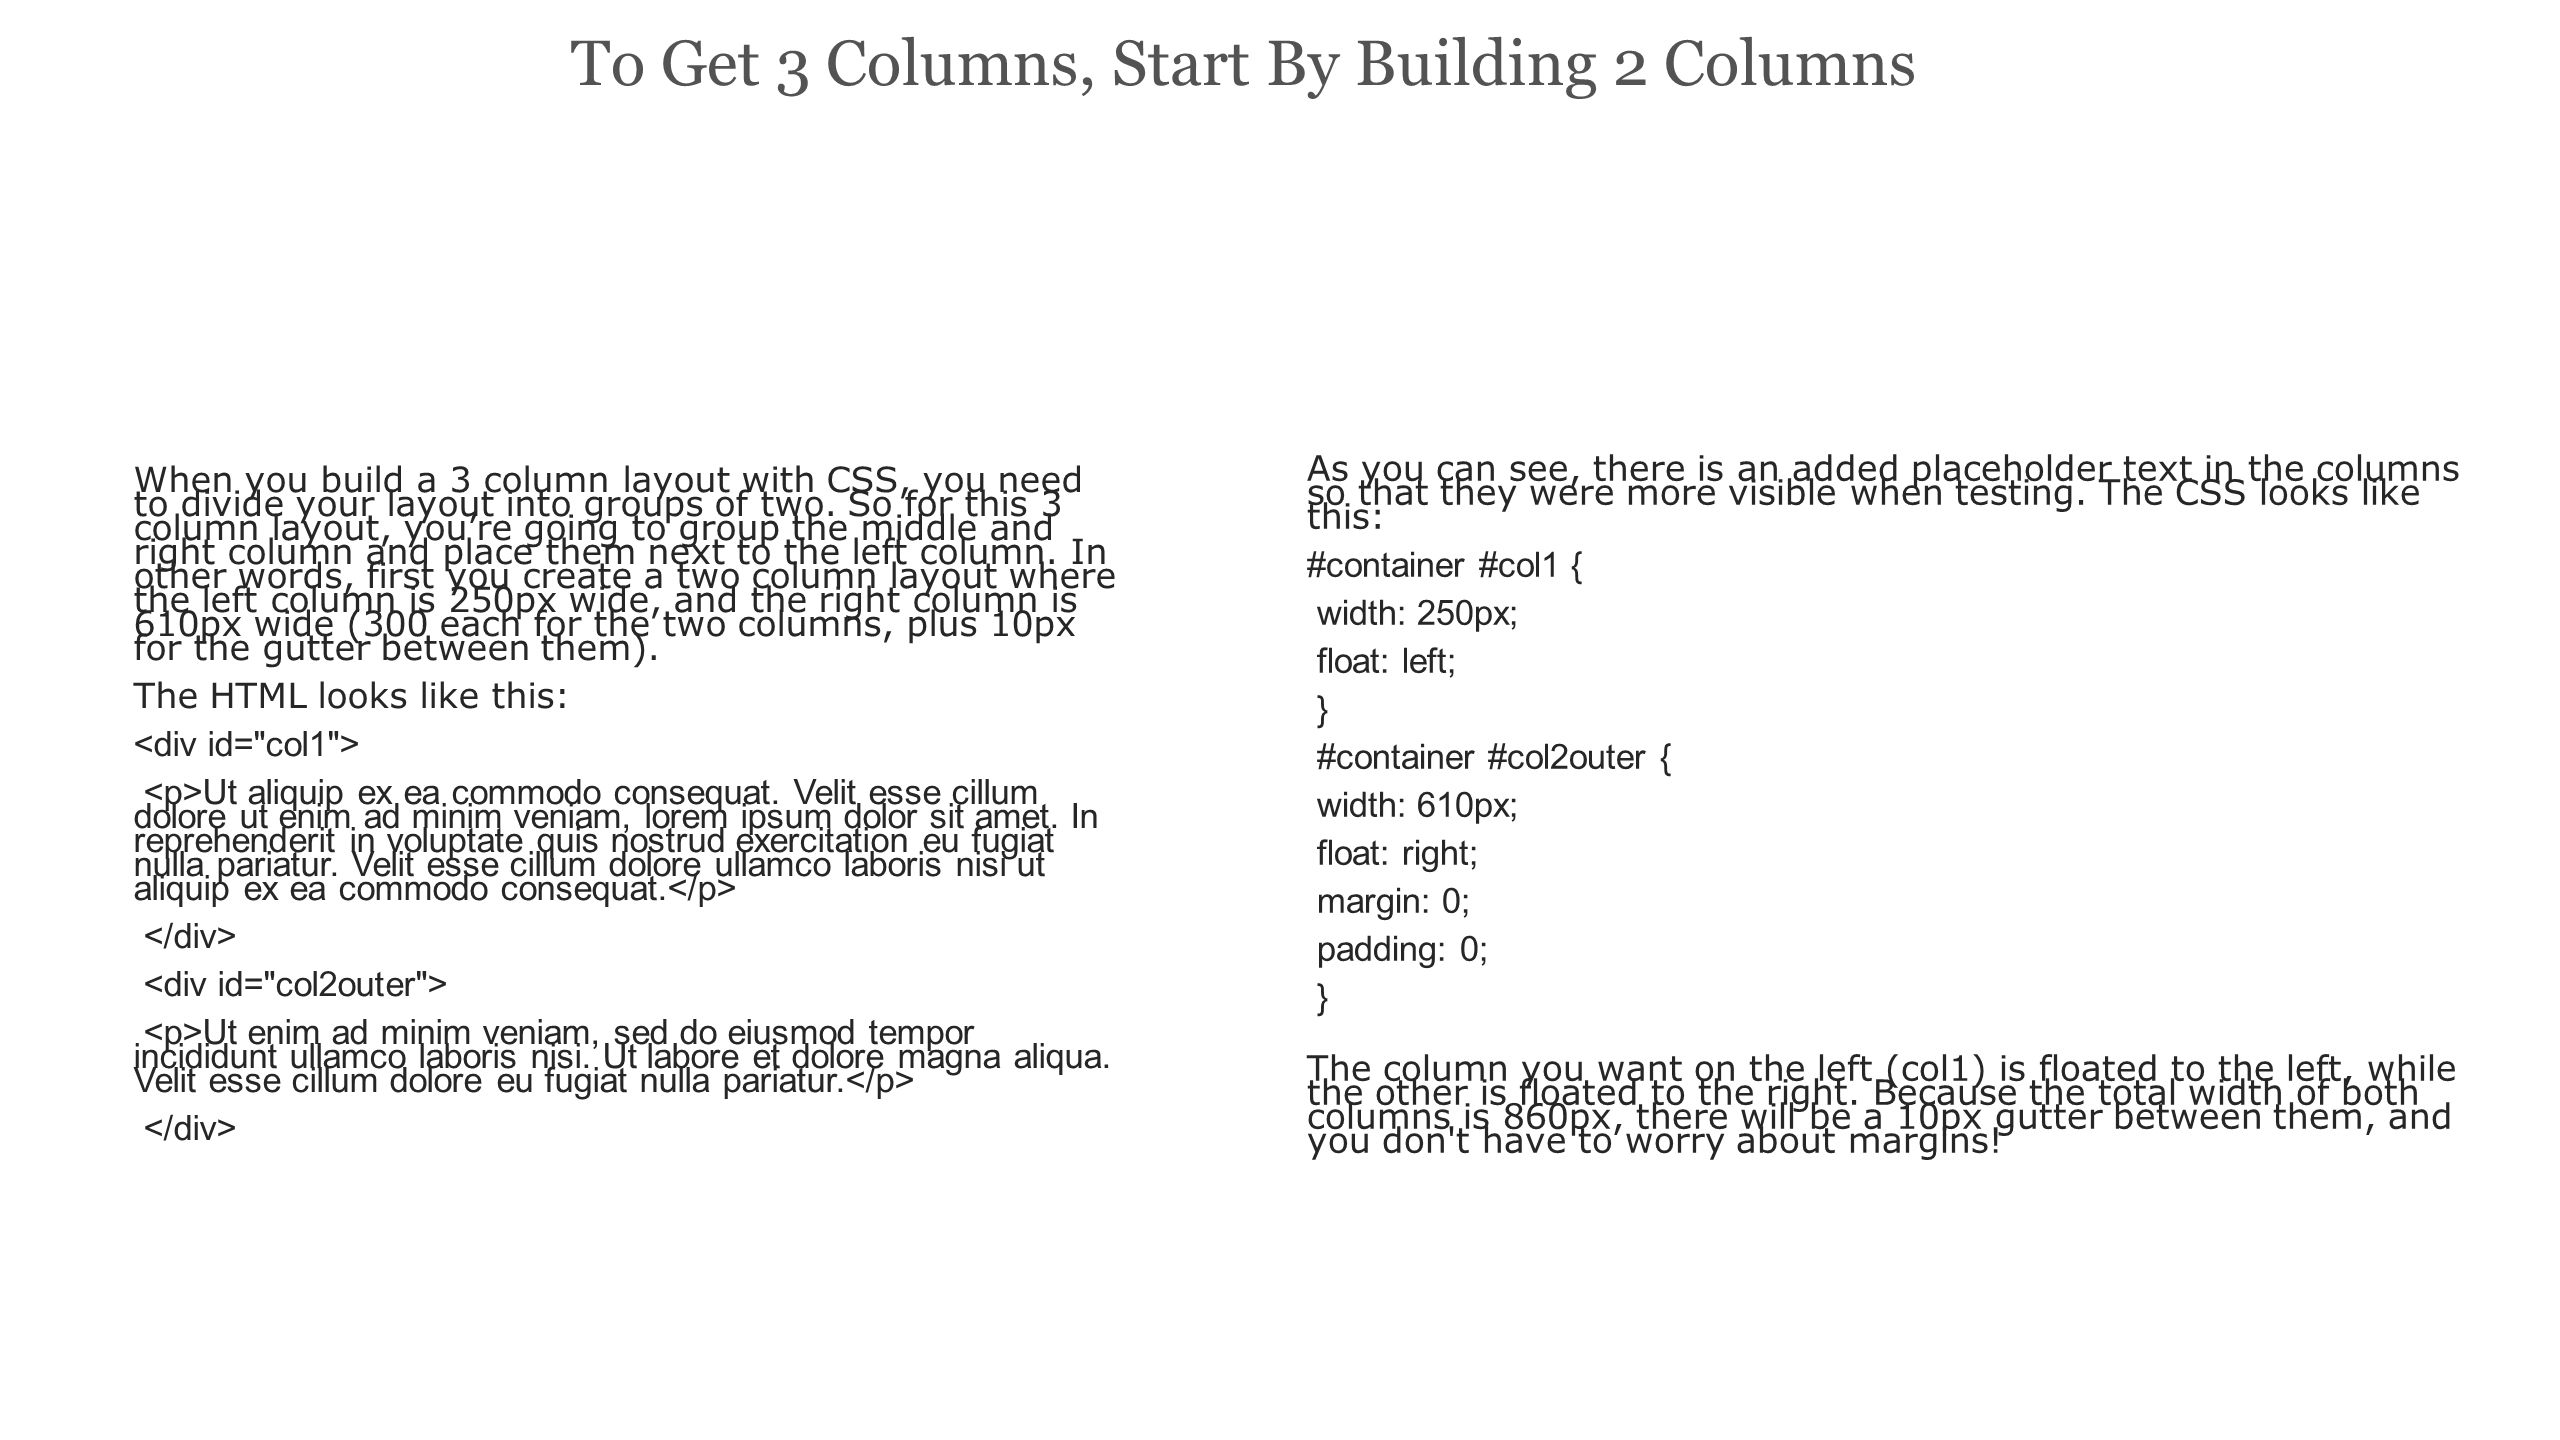 Add 2 Columns Inside the Wide Second Column To create the 3 columns, add two divs inside the wider second column, just like you added 2 divs inside the container column in the last step.